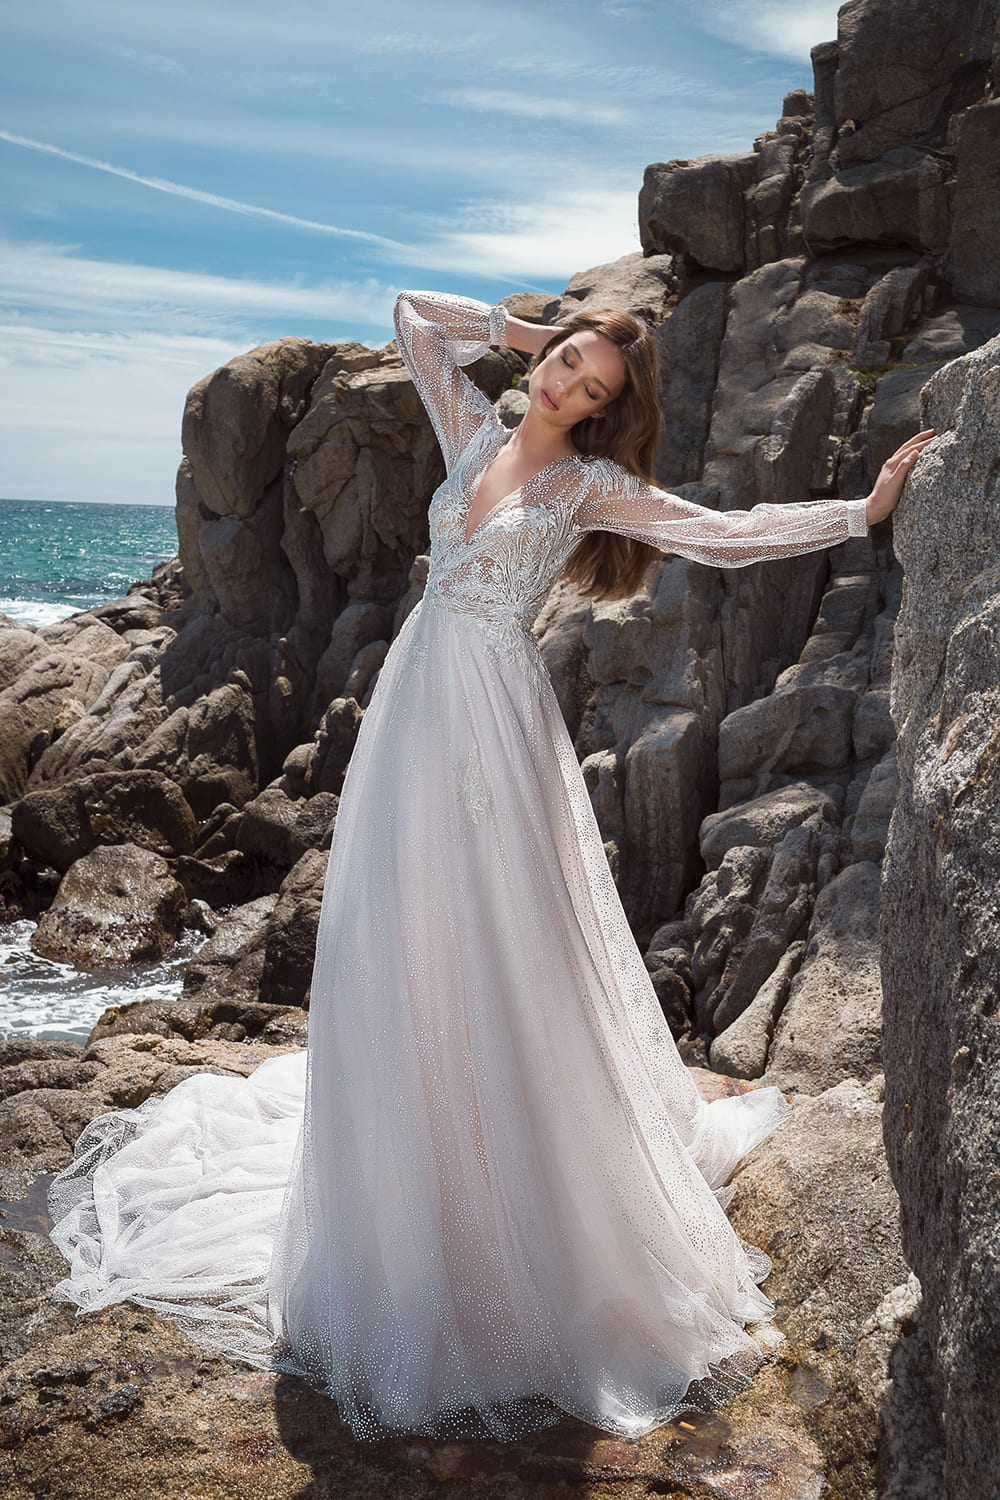 Stunning Wedding Outfit Ideas